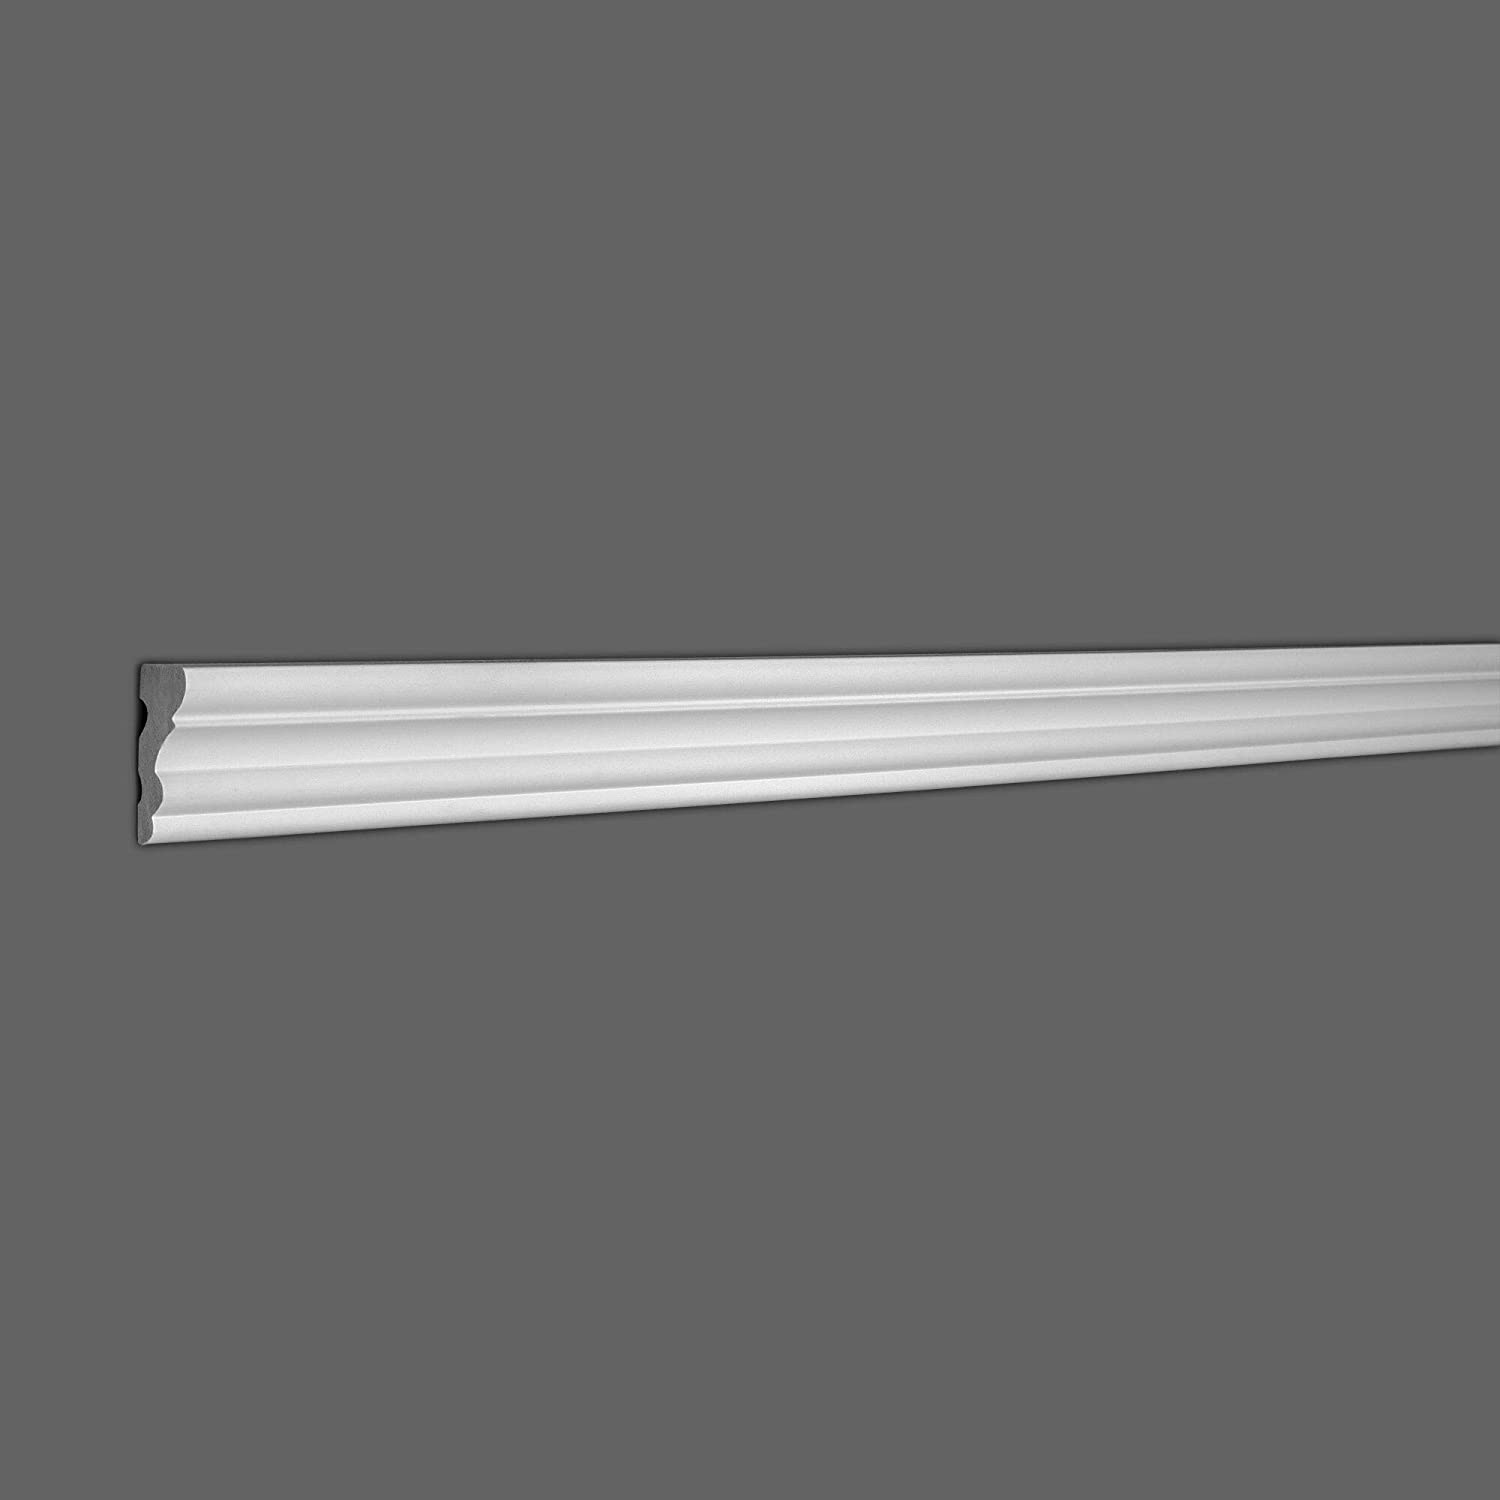 Unknown1 2 Inch X 5 Superlatite 8 94-1 Panel Pack Indianapolis Mall White Polymer Moulding